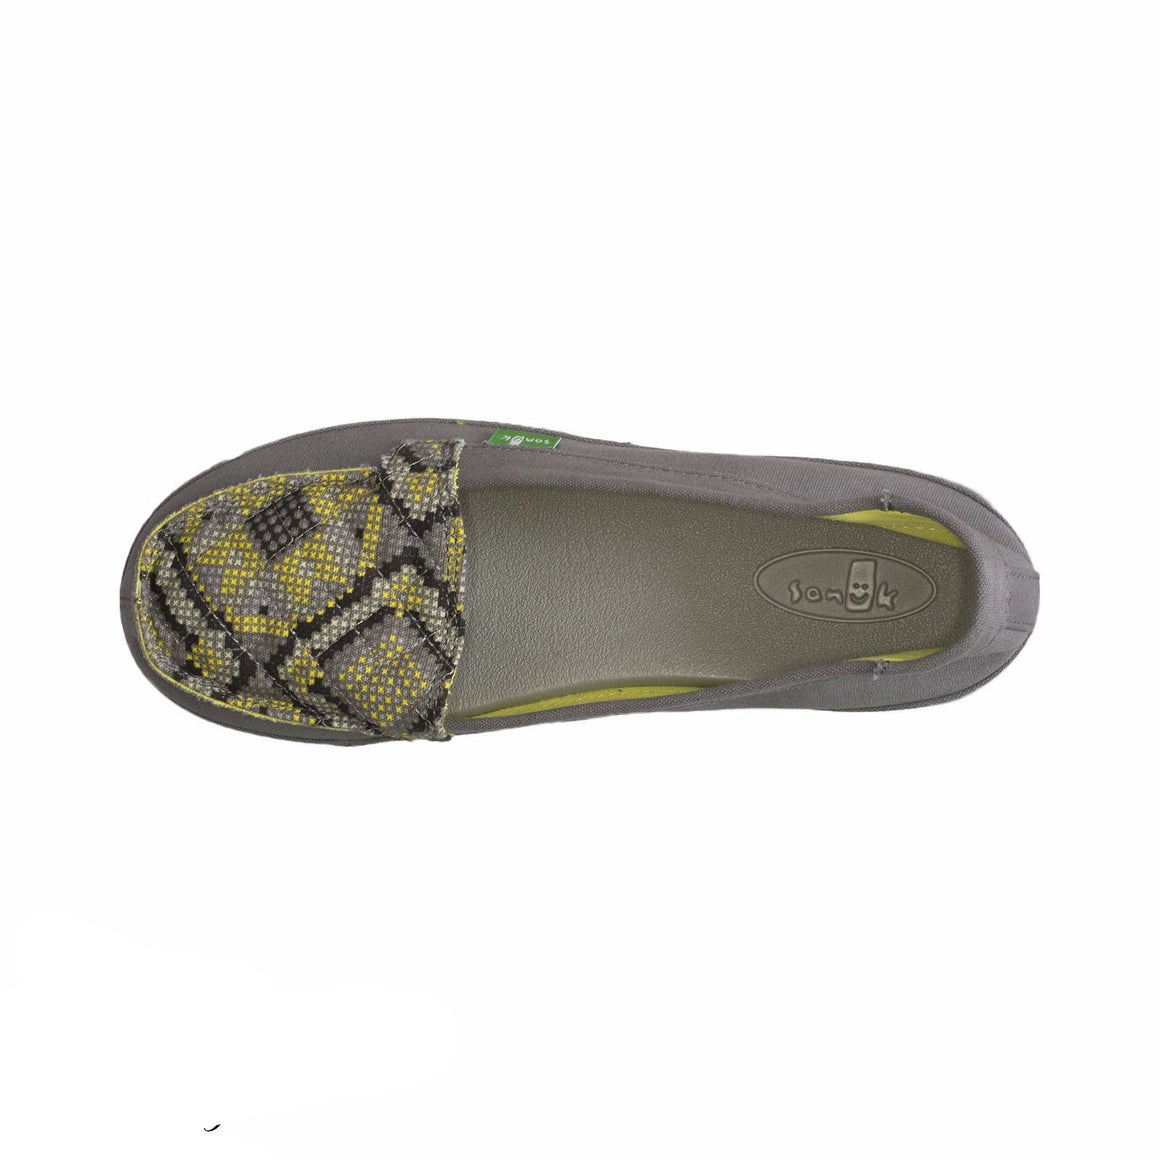 Sanuk Cross Stitch Charcoal / Highlighter Shoes